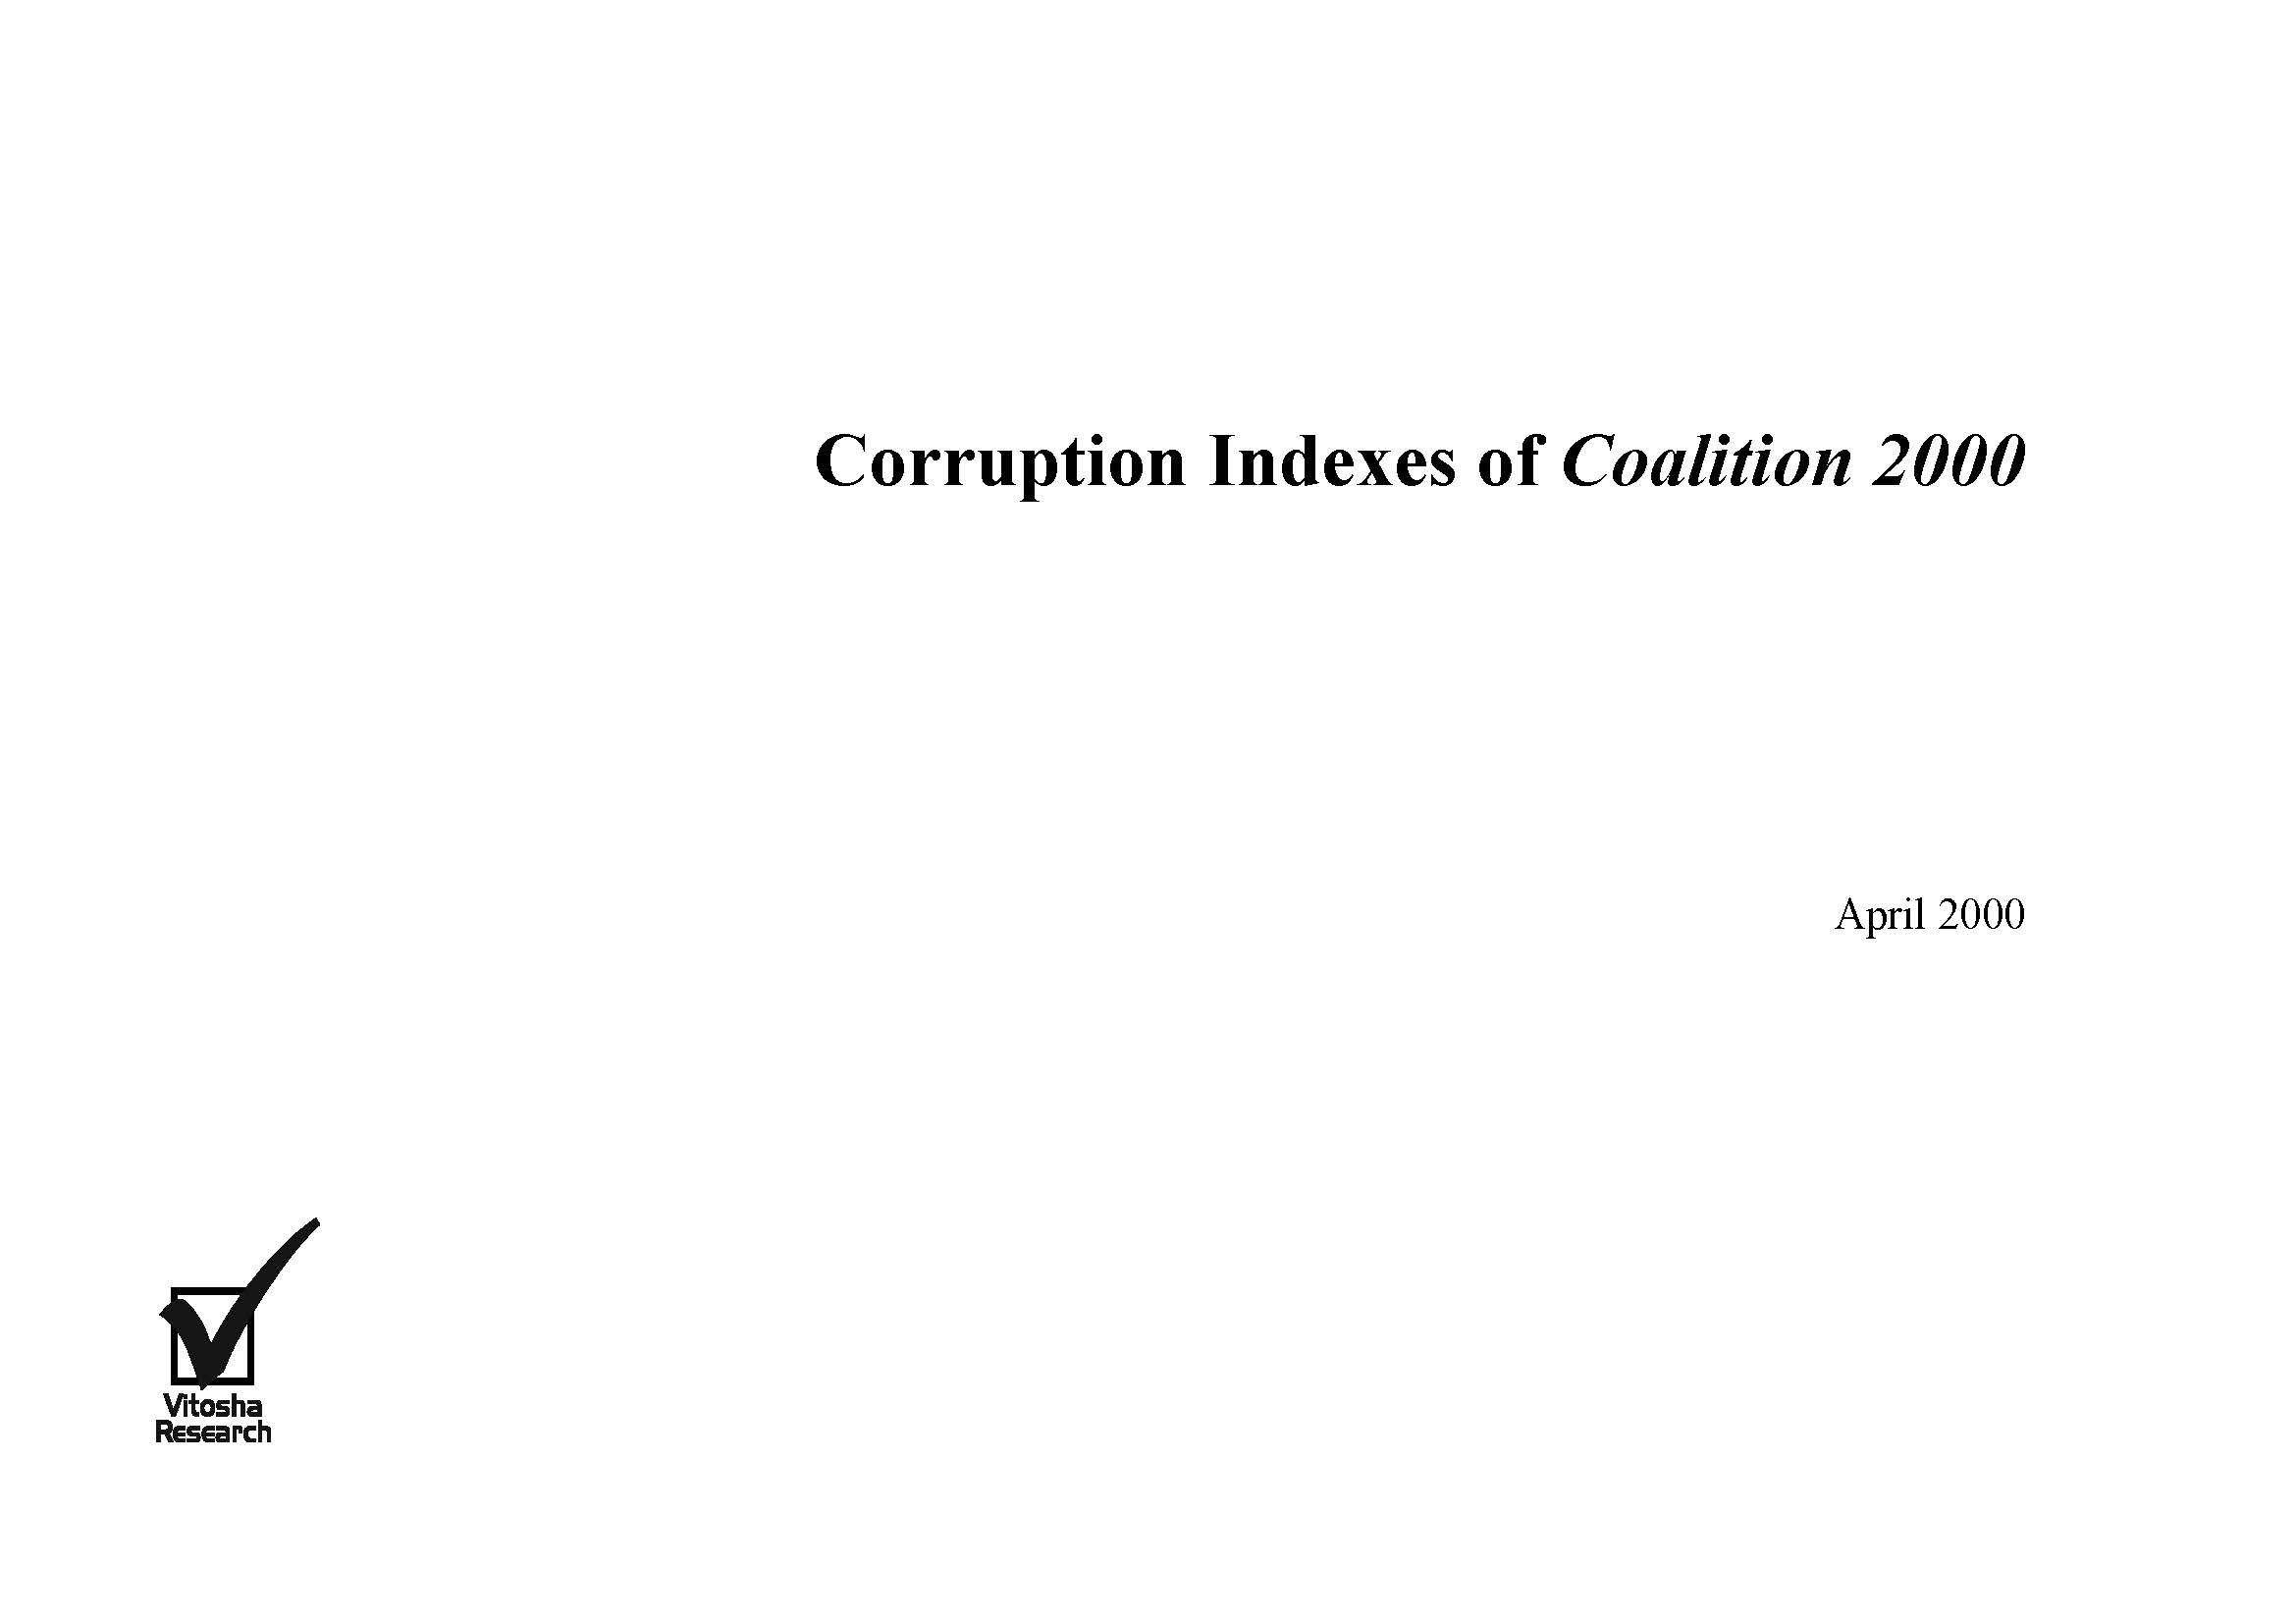 Corruption Indexes of Coalition 2000, April 2000